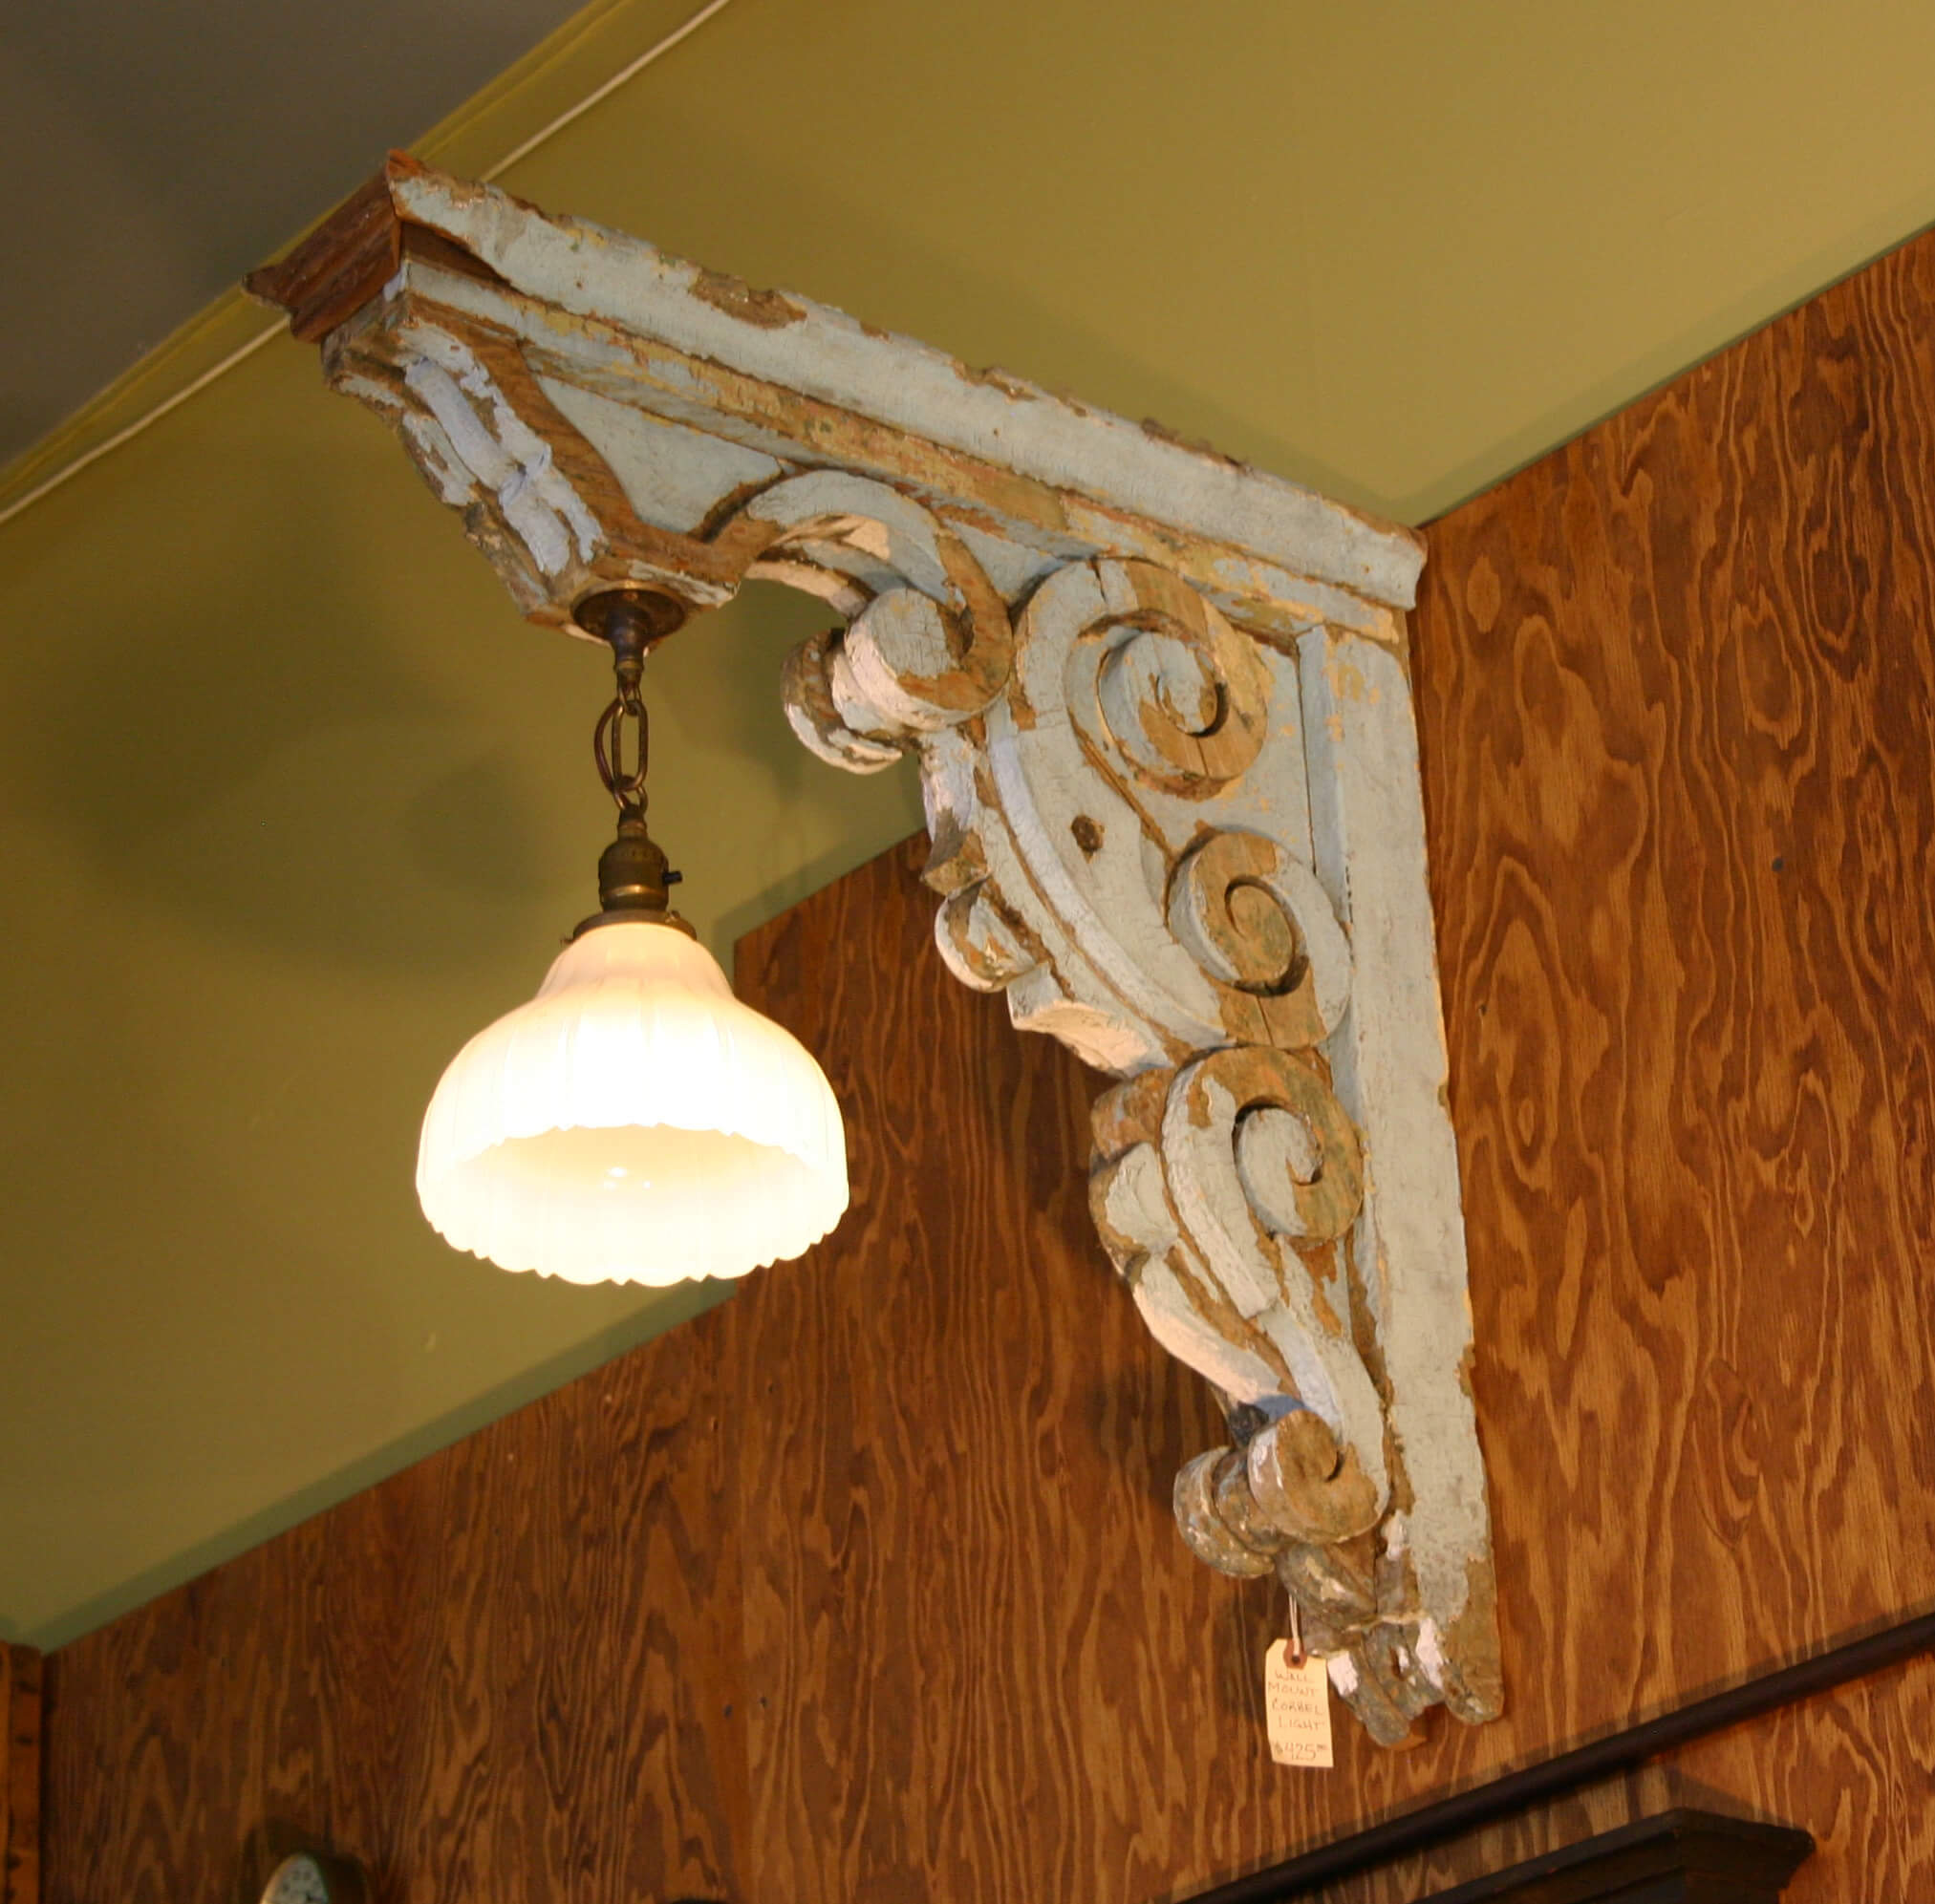 Scrolled Wood Light Fixture Concept